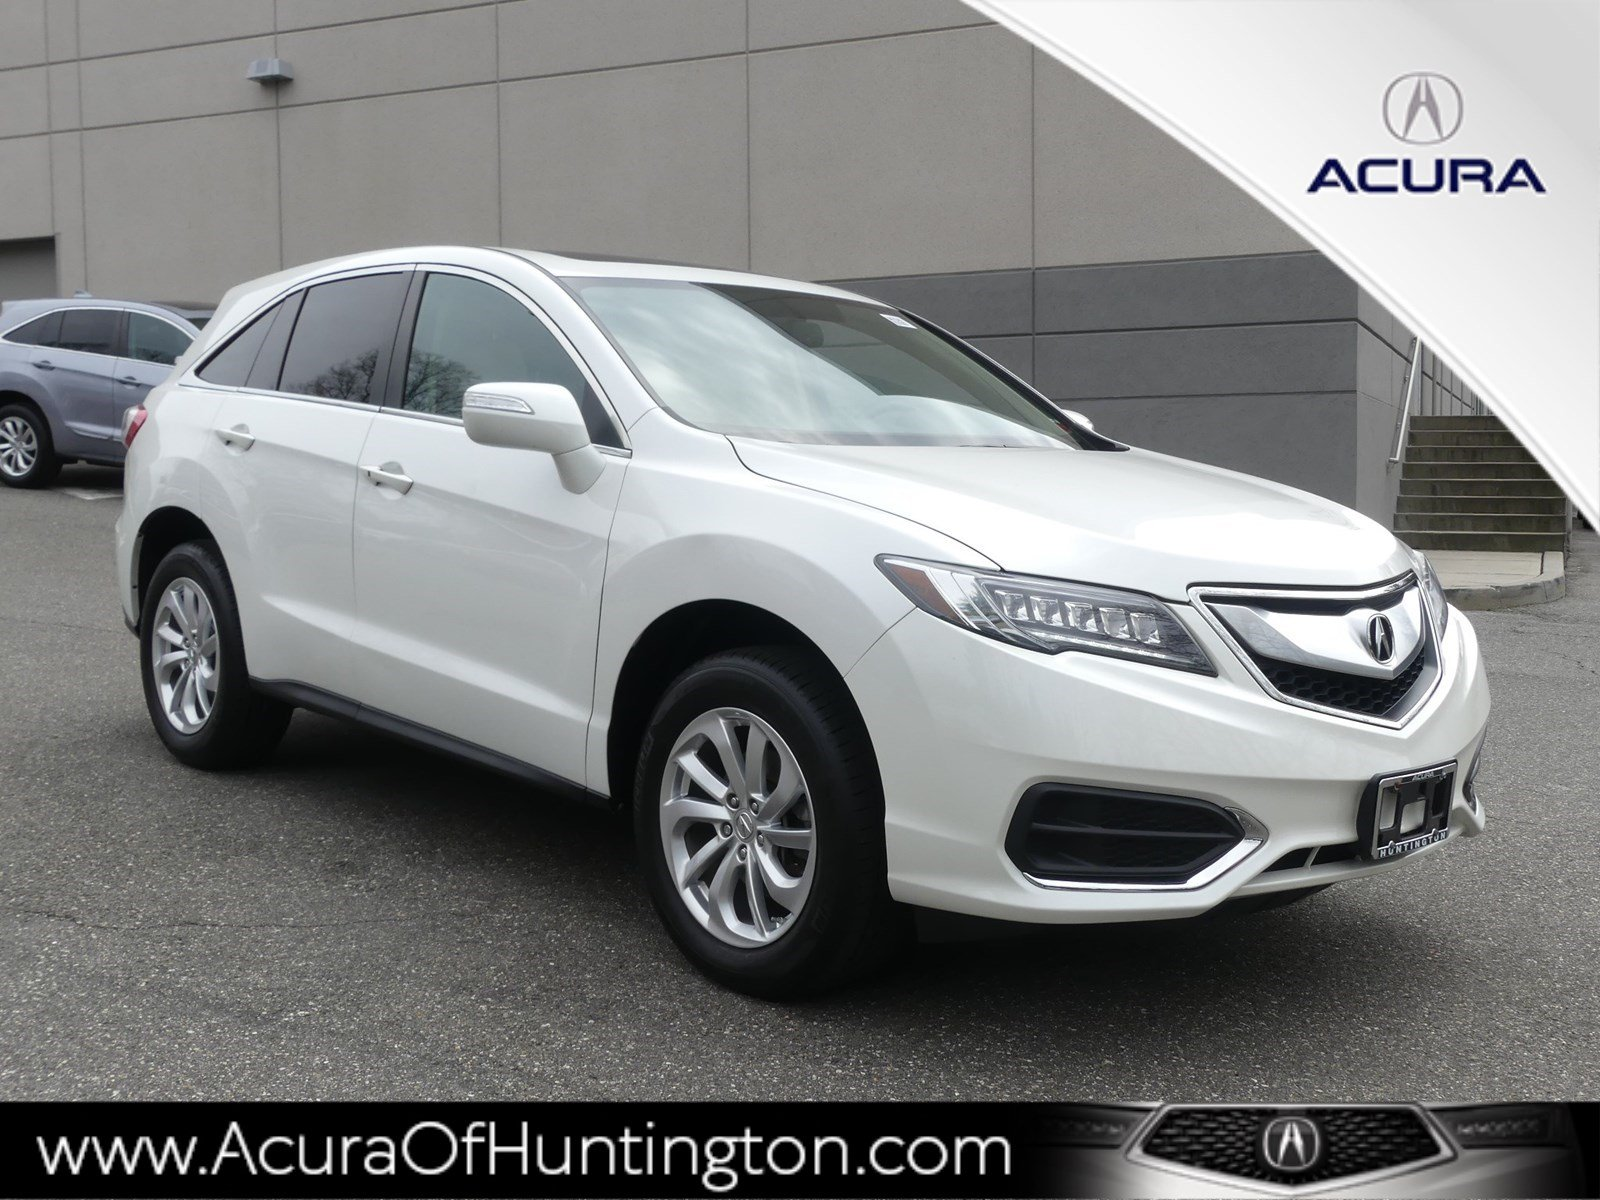 Certified Pre Owned 2016 Acura RDX AWD Sport Utility in Huntington UA7642